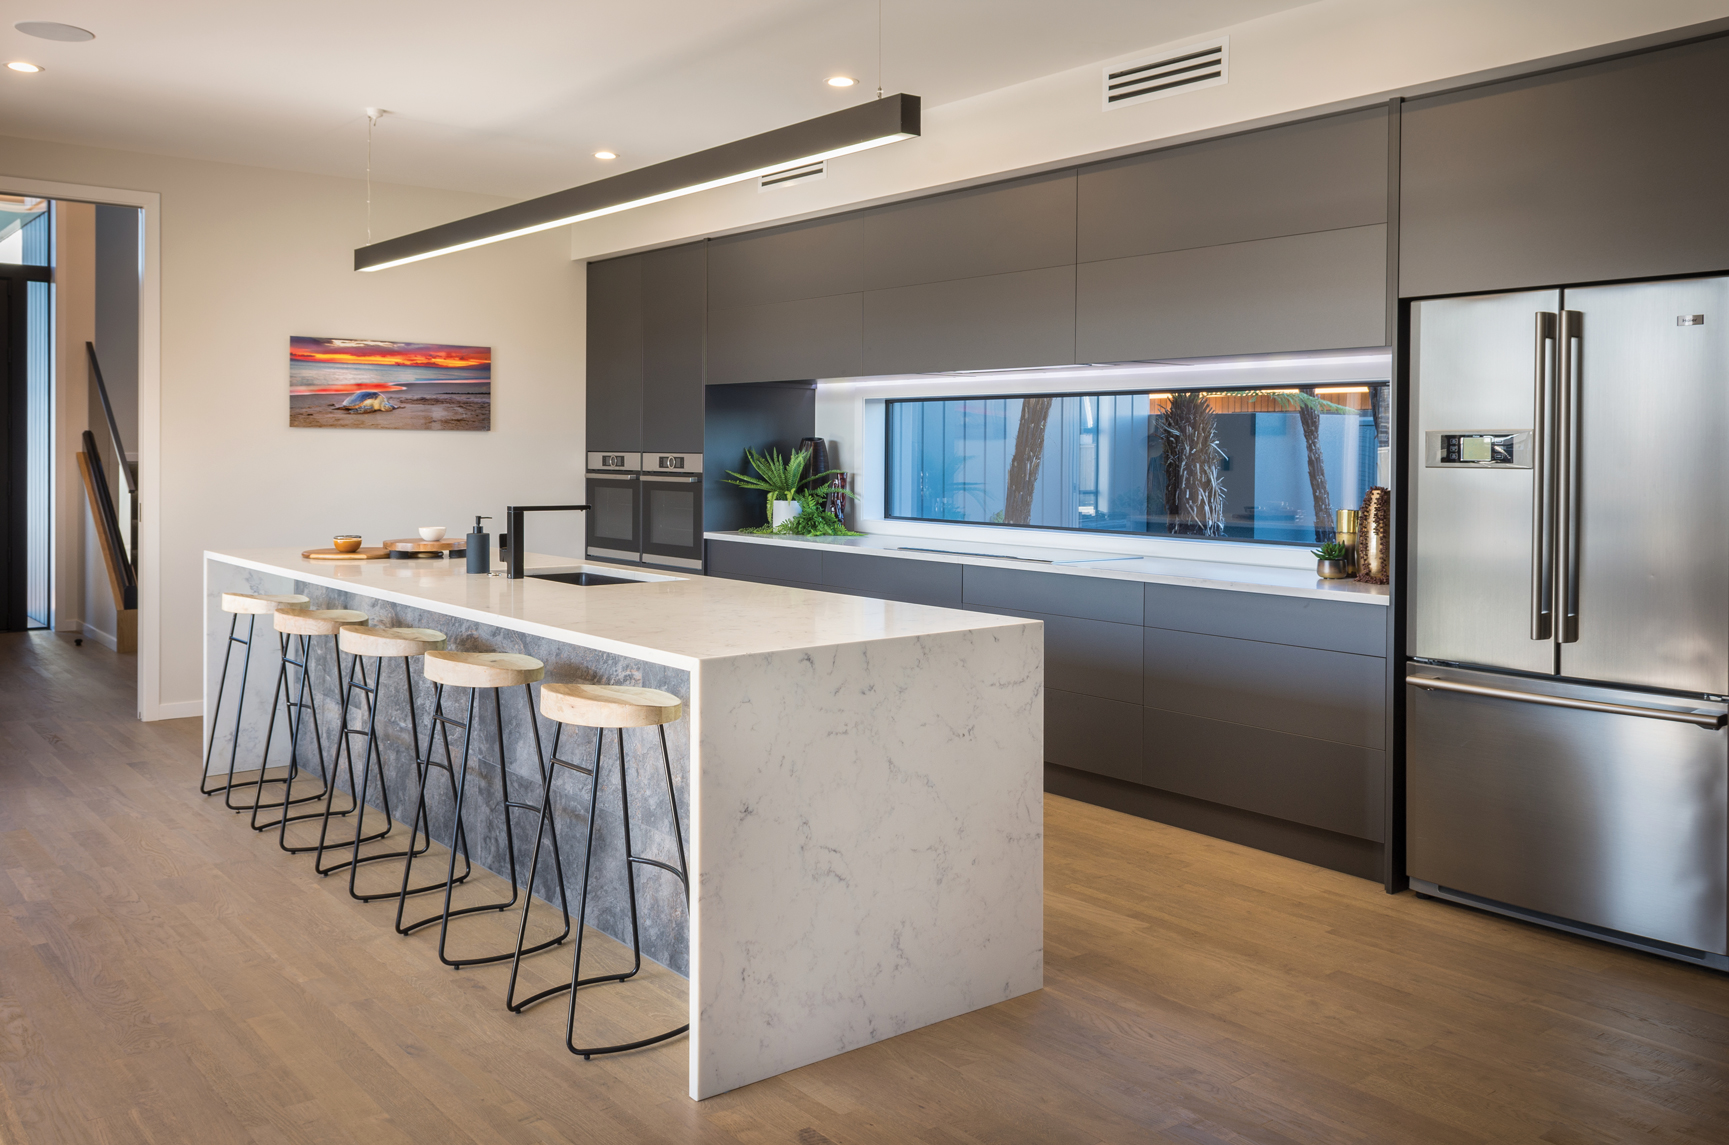 KITCHEN:  Misco Joinery supplied and installed the joinery in the beautiful and superbly functional kitchen which features a large kitchen island topped by a Prime Stone benchtop with waterfall ends.